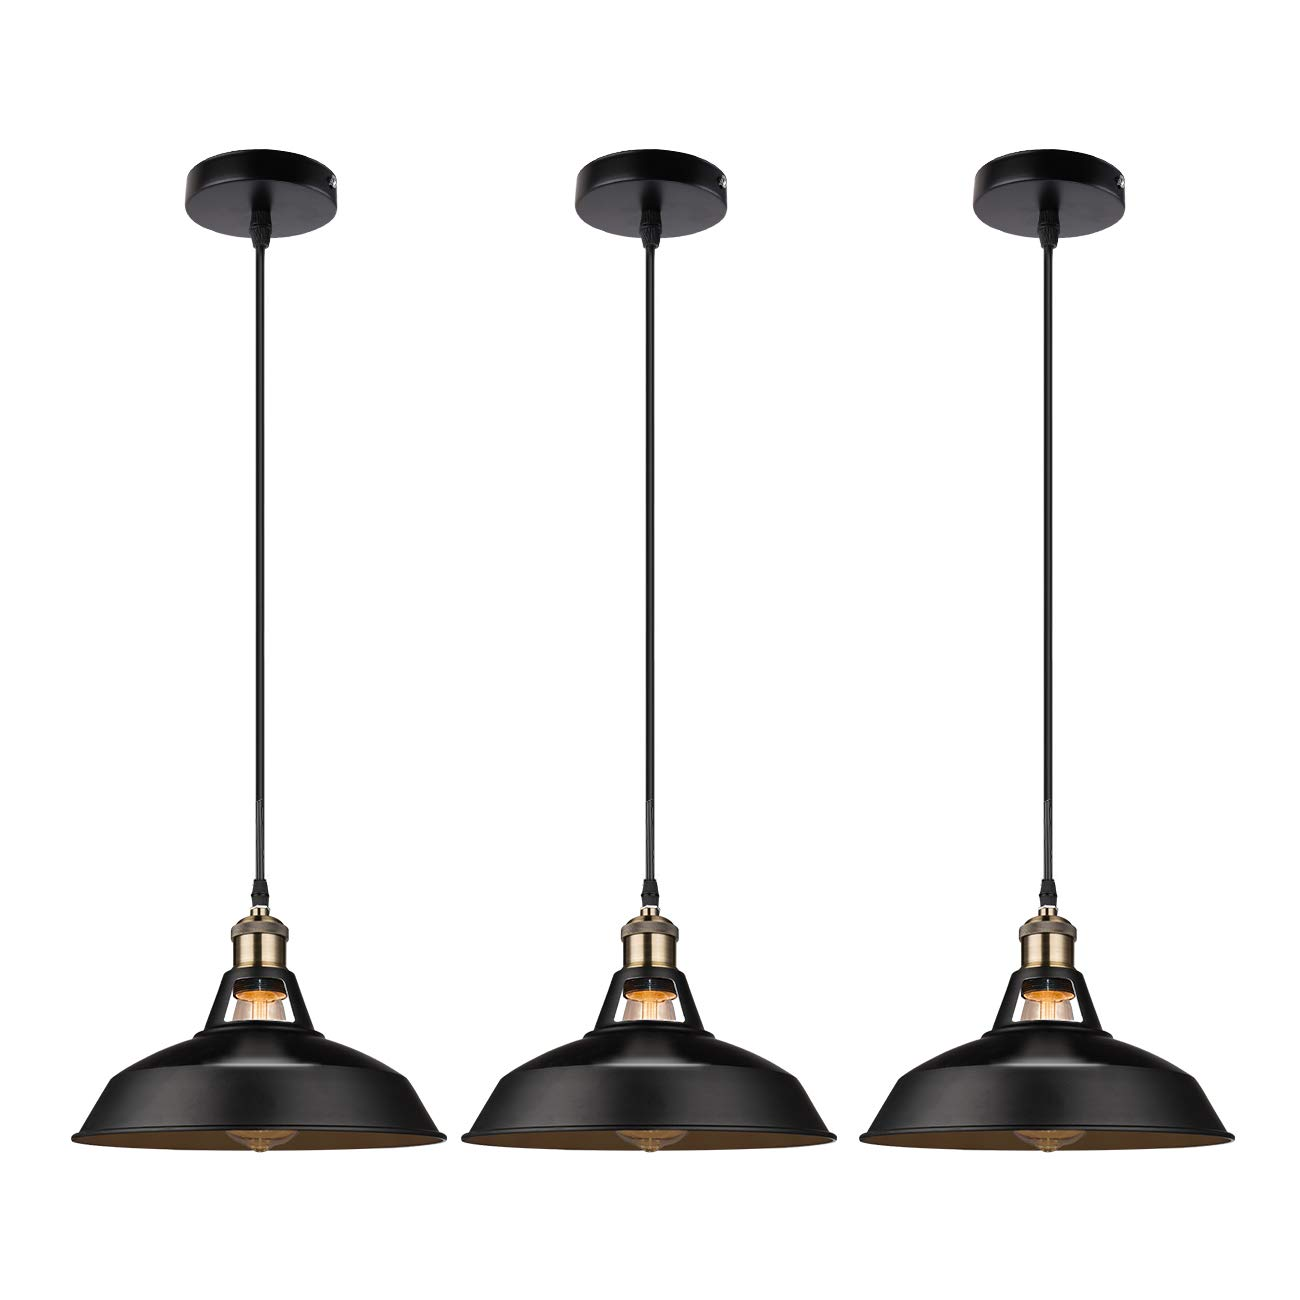 Galygg retro industrial pendant lighting black ceiling light fixtures metal shade hanging pendant lights 10 63 in diameter for kitchen island